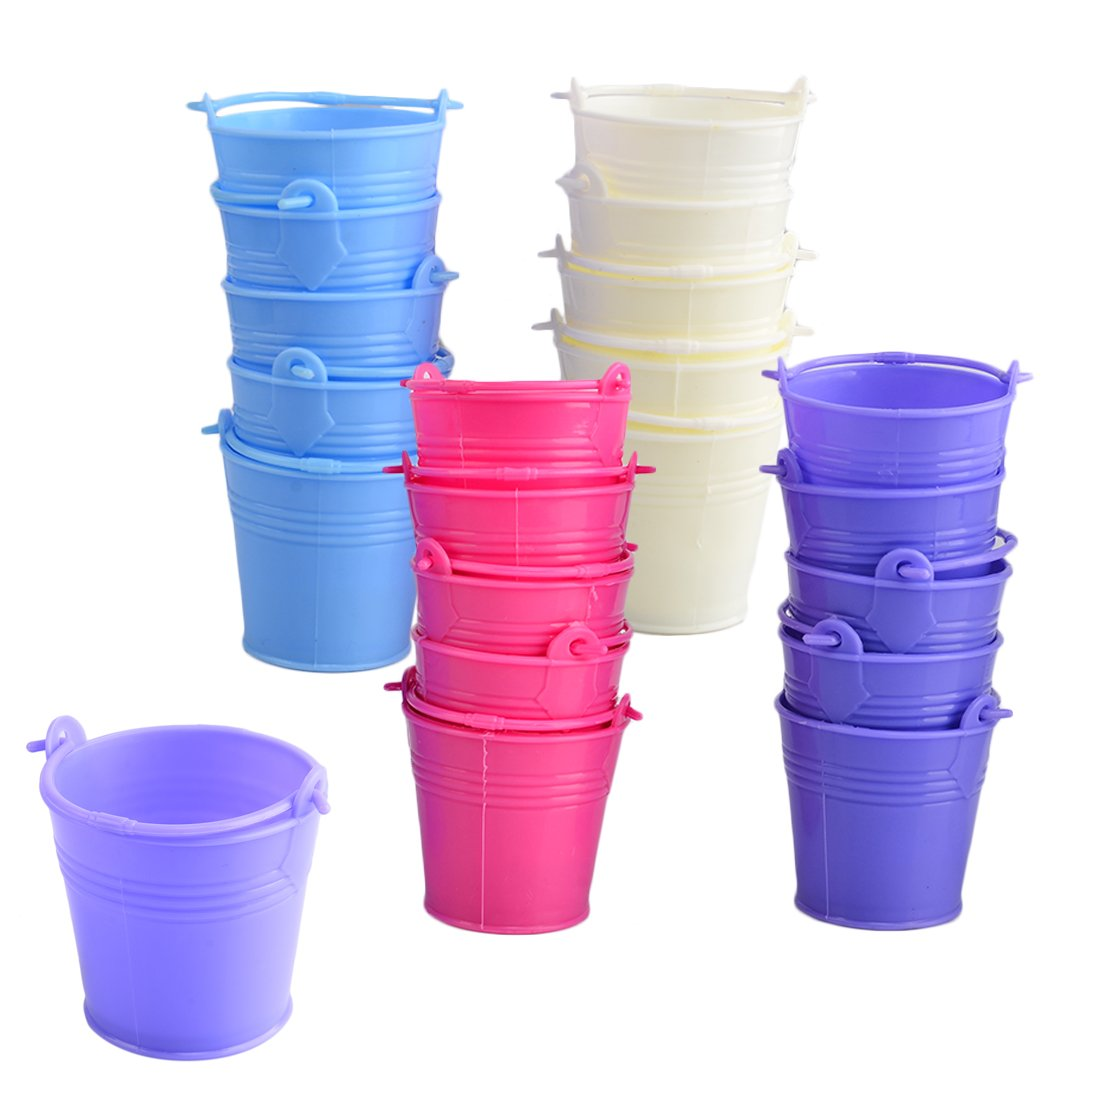 Candy Buckets,Hmane 20Pcs Mini Cute Colorful Candy Buckets Pails - Multicolored(shipped random)